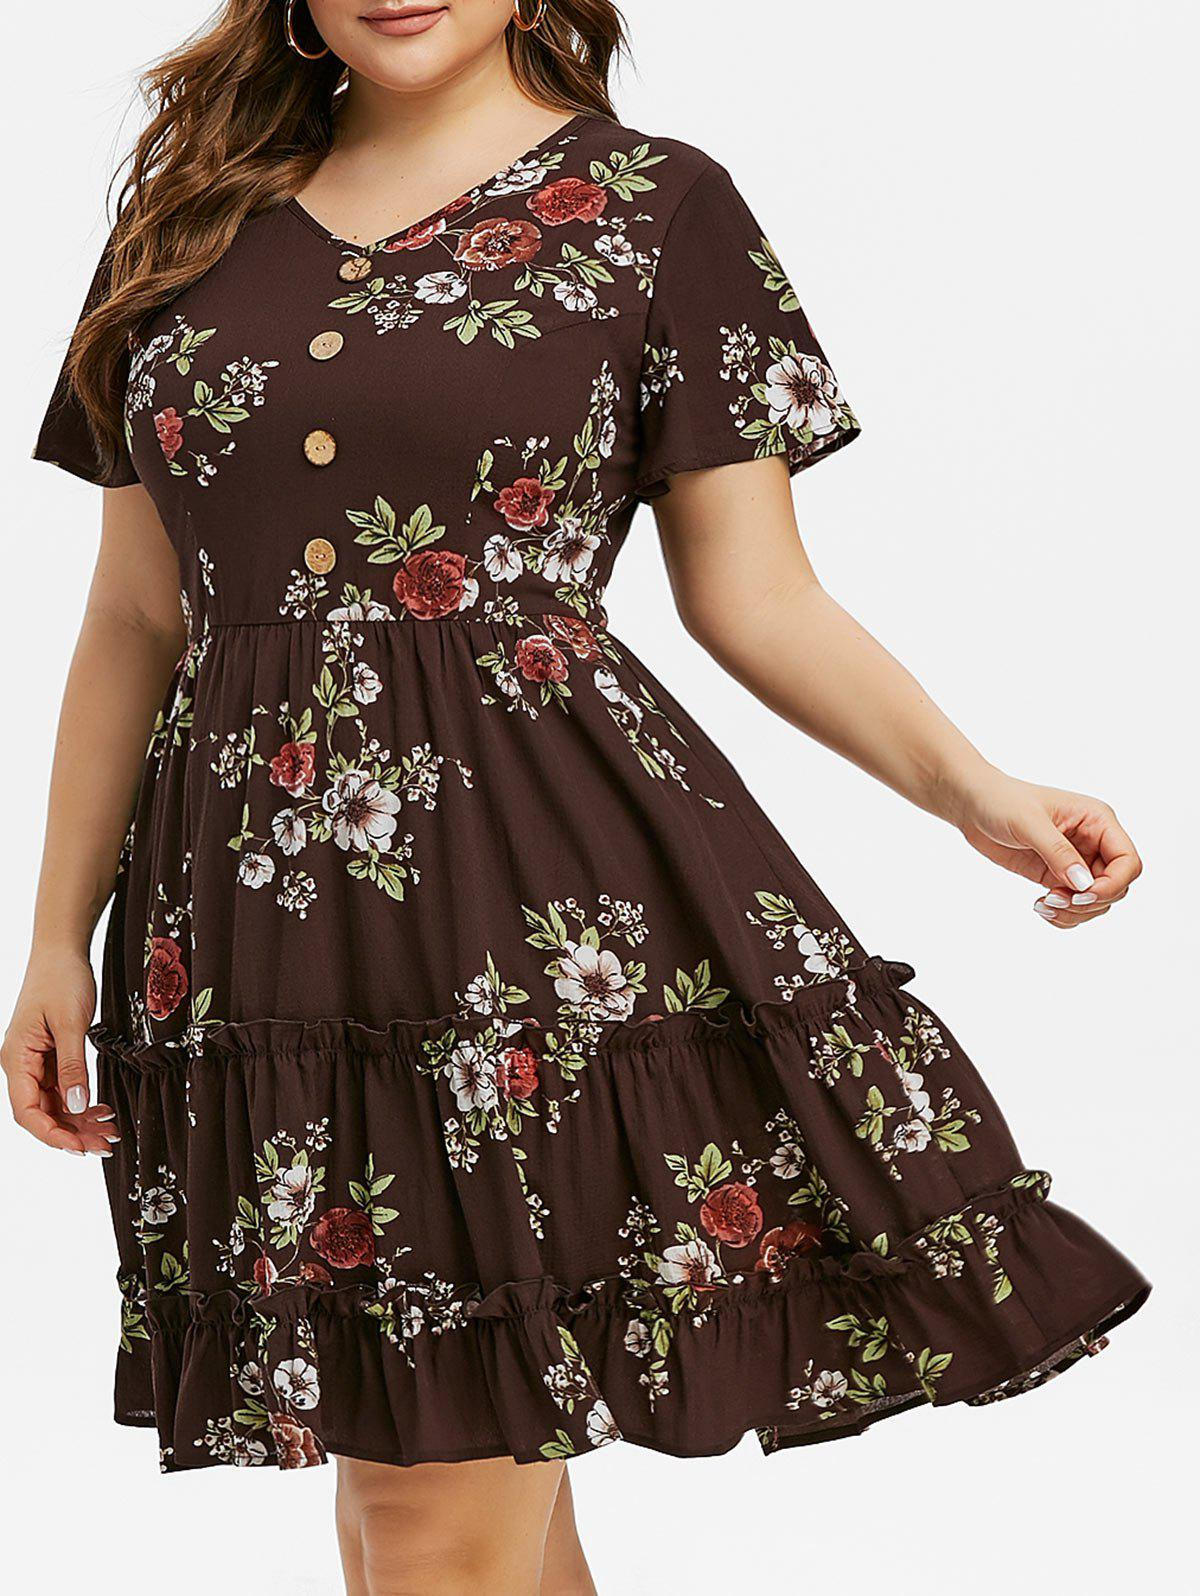 Plus Size Floral Print Buttoned Ruffled Dress - SEPIA 4X